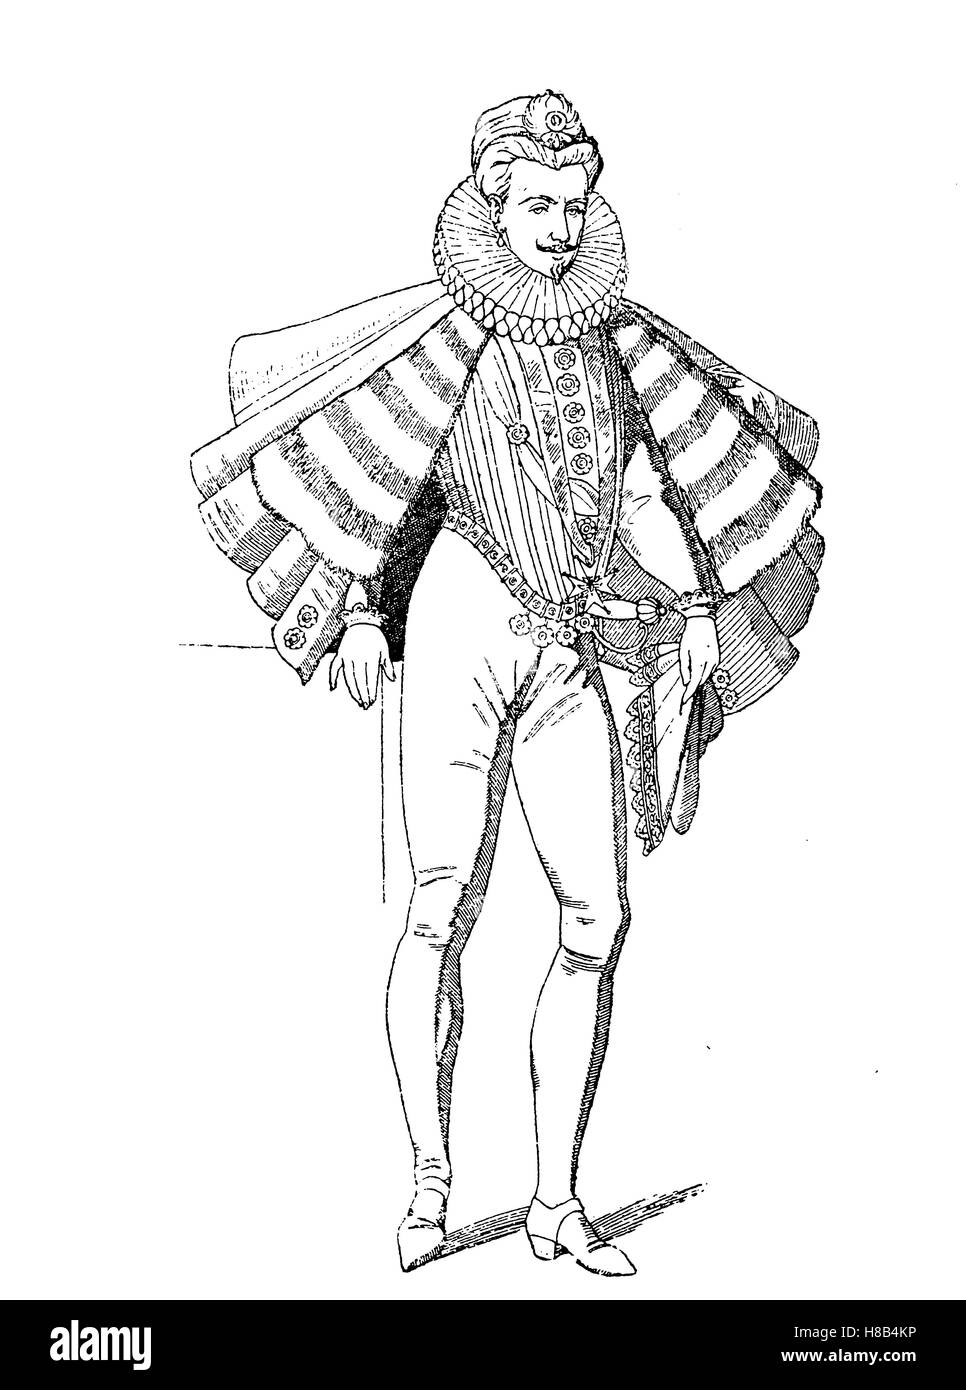 Henry III of France, wearing a costume of the Les Mignons, History of fashion, costume story - Stock Image